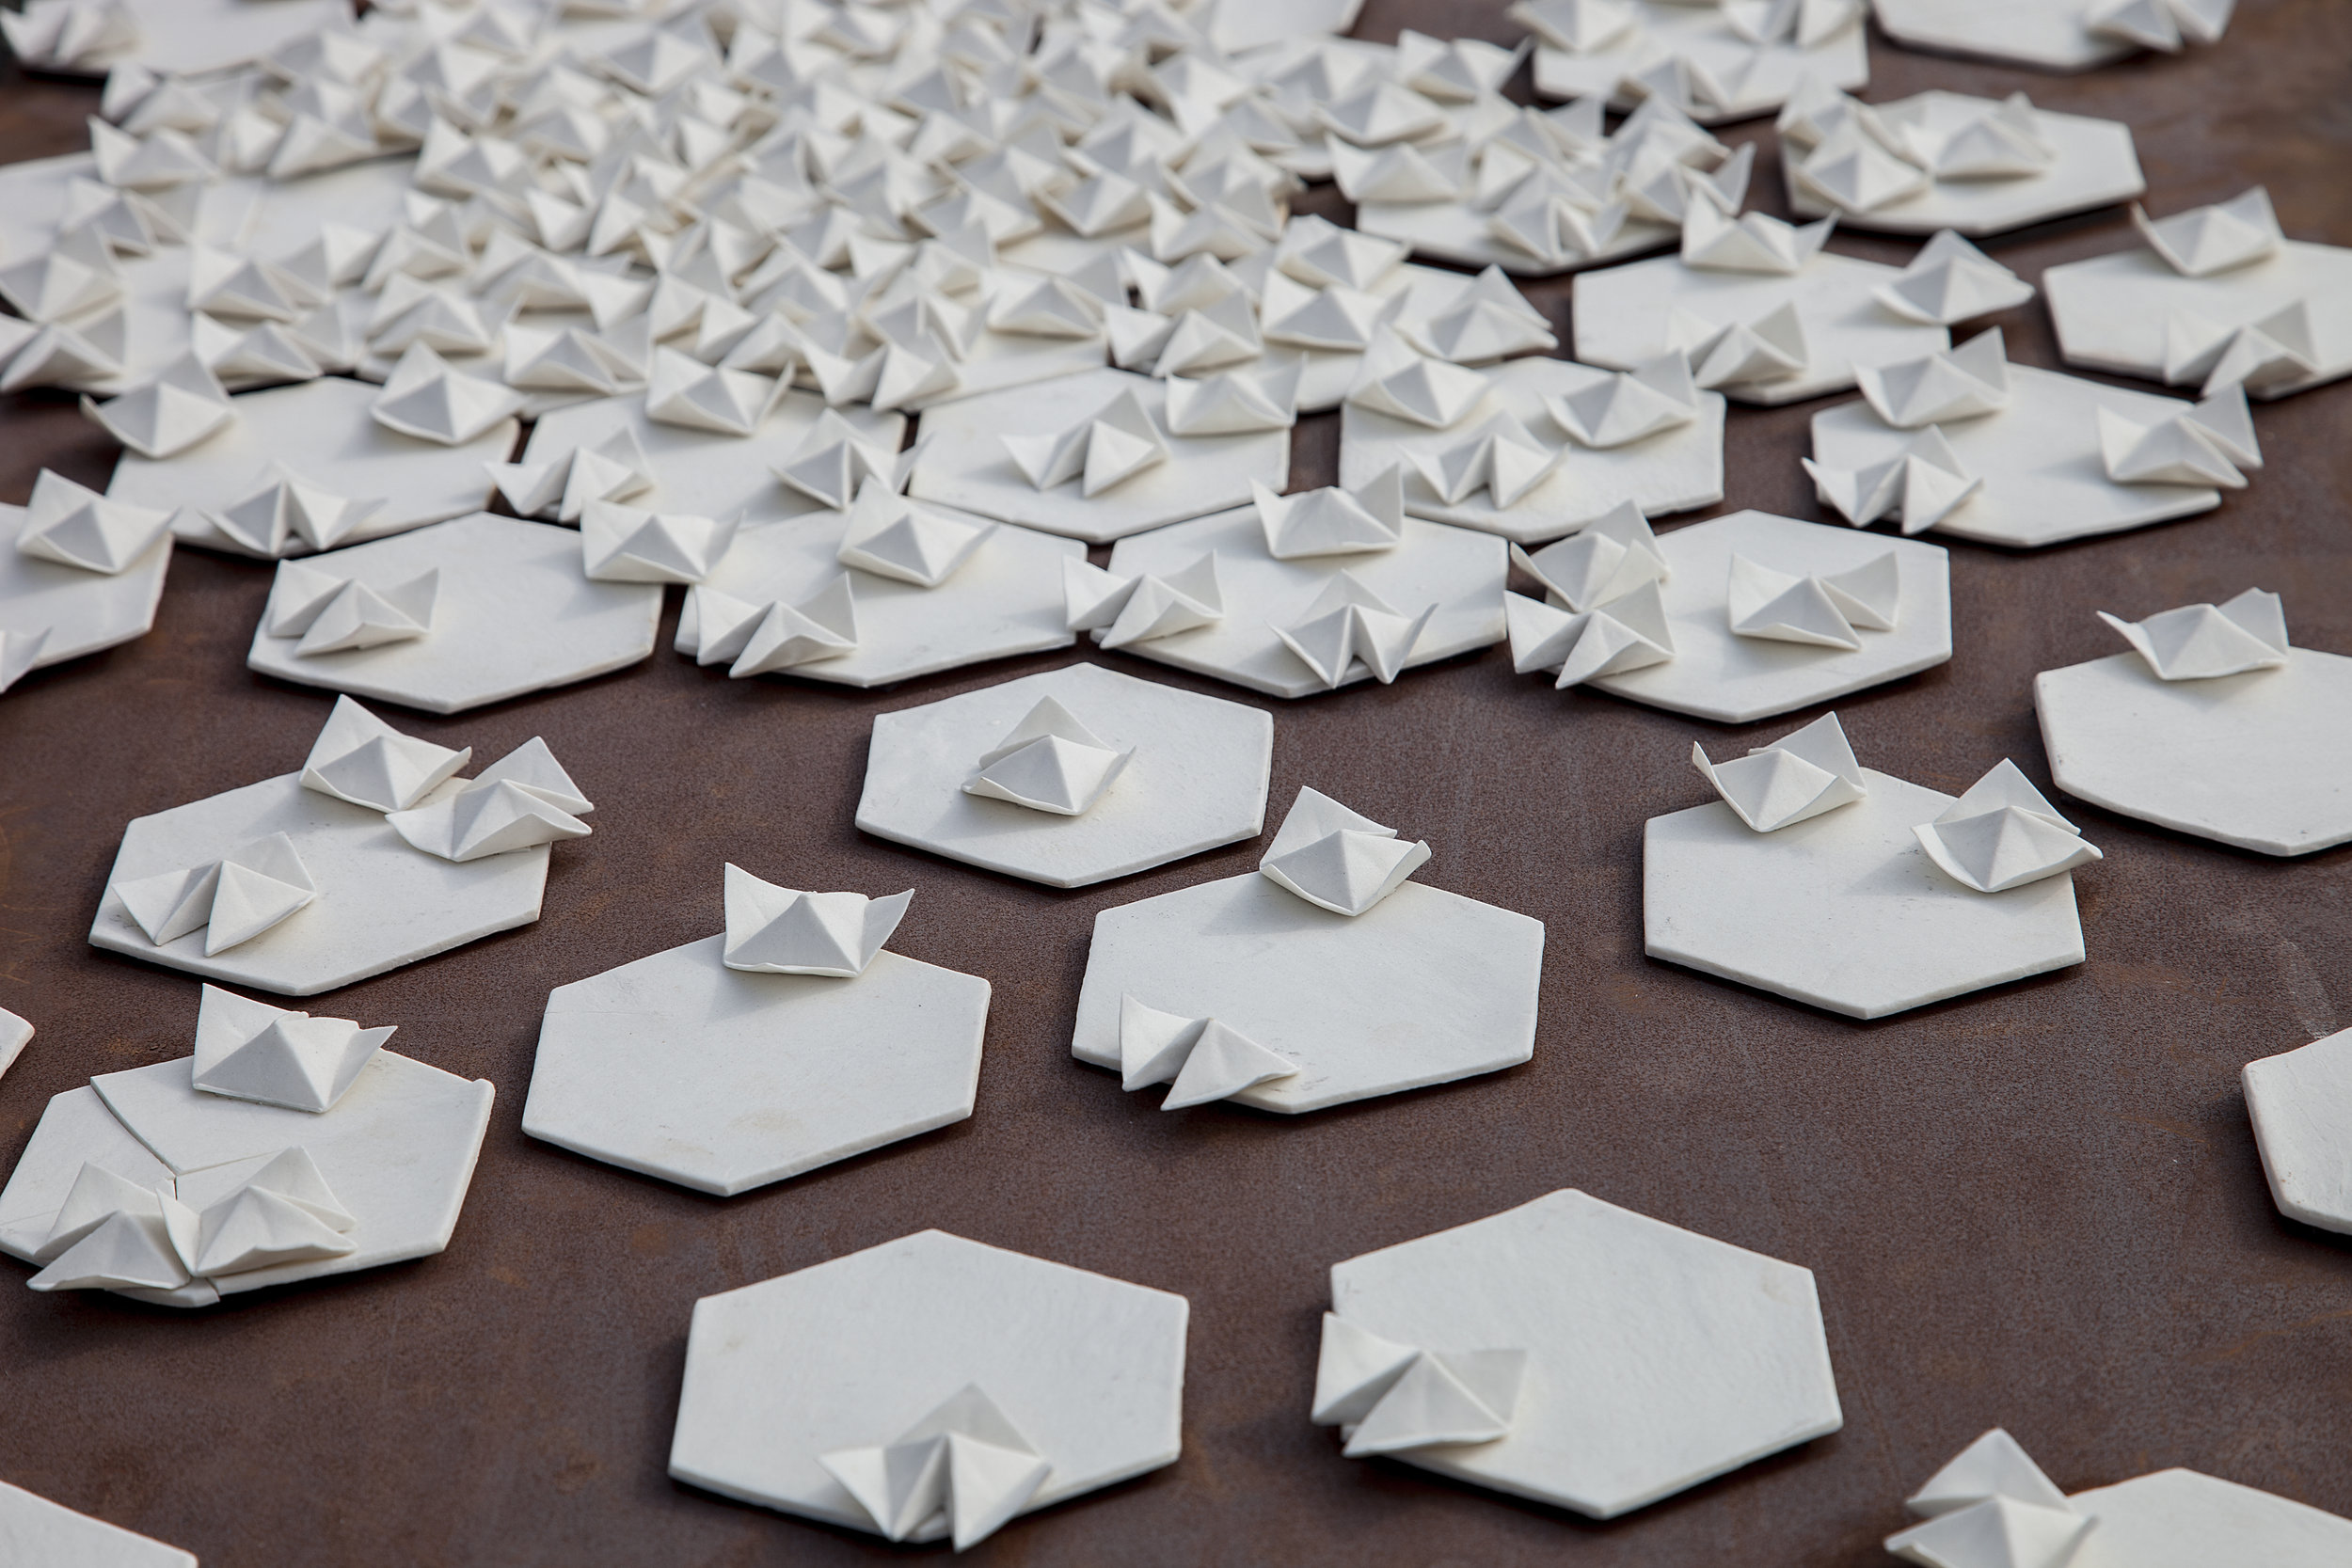 Remy-Dubibe-Ceramist-Artist-Objects-Origami-Shaped-Routine.jpg